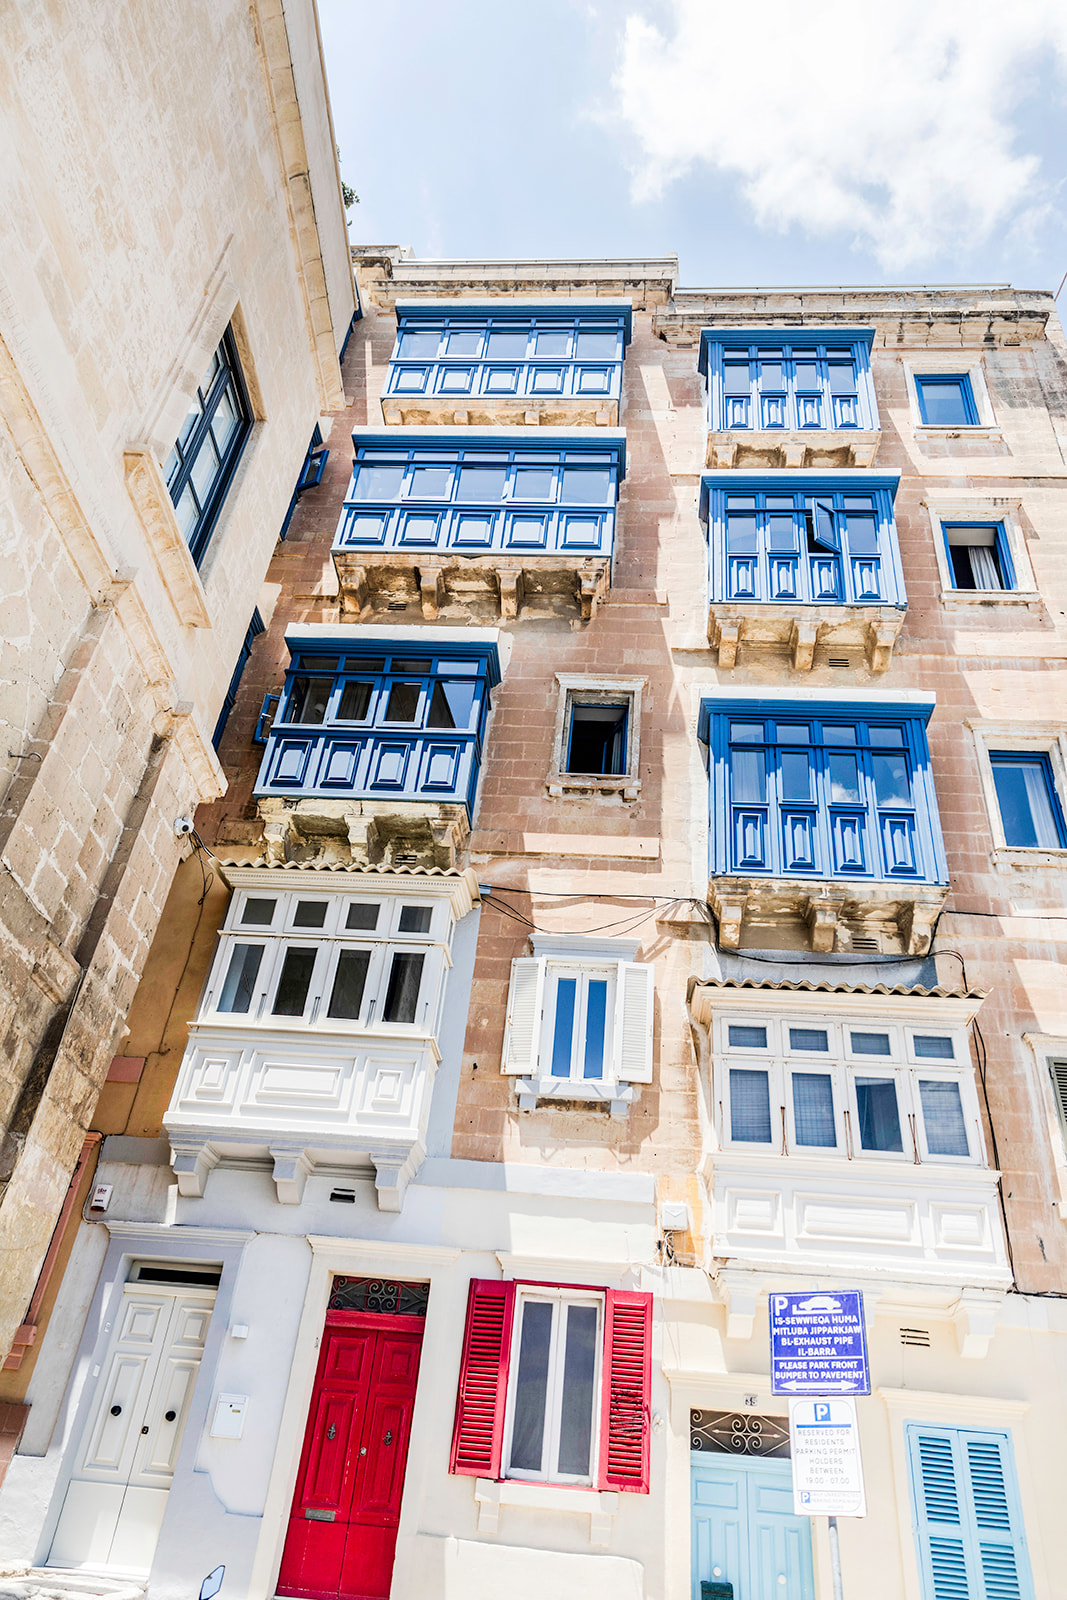 buildings in Malta